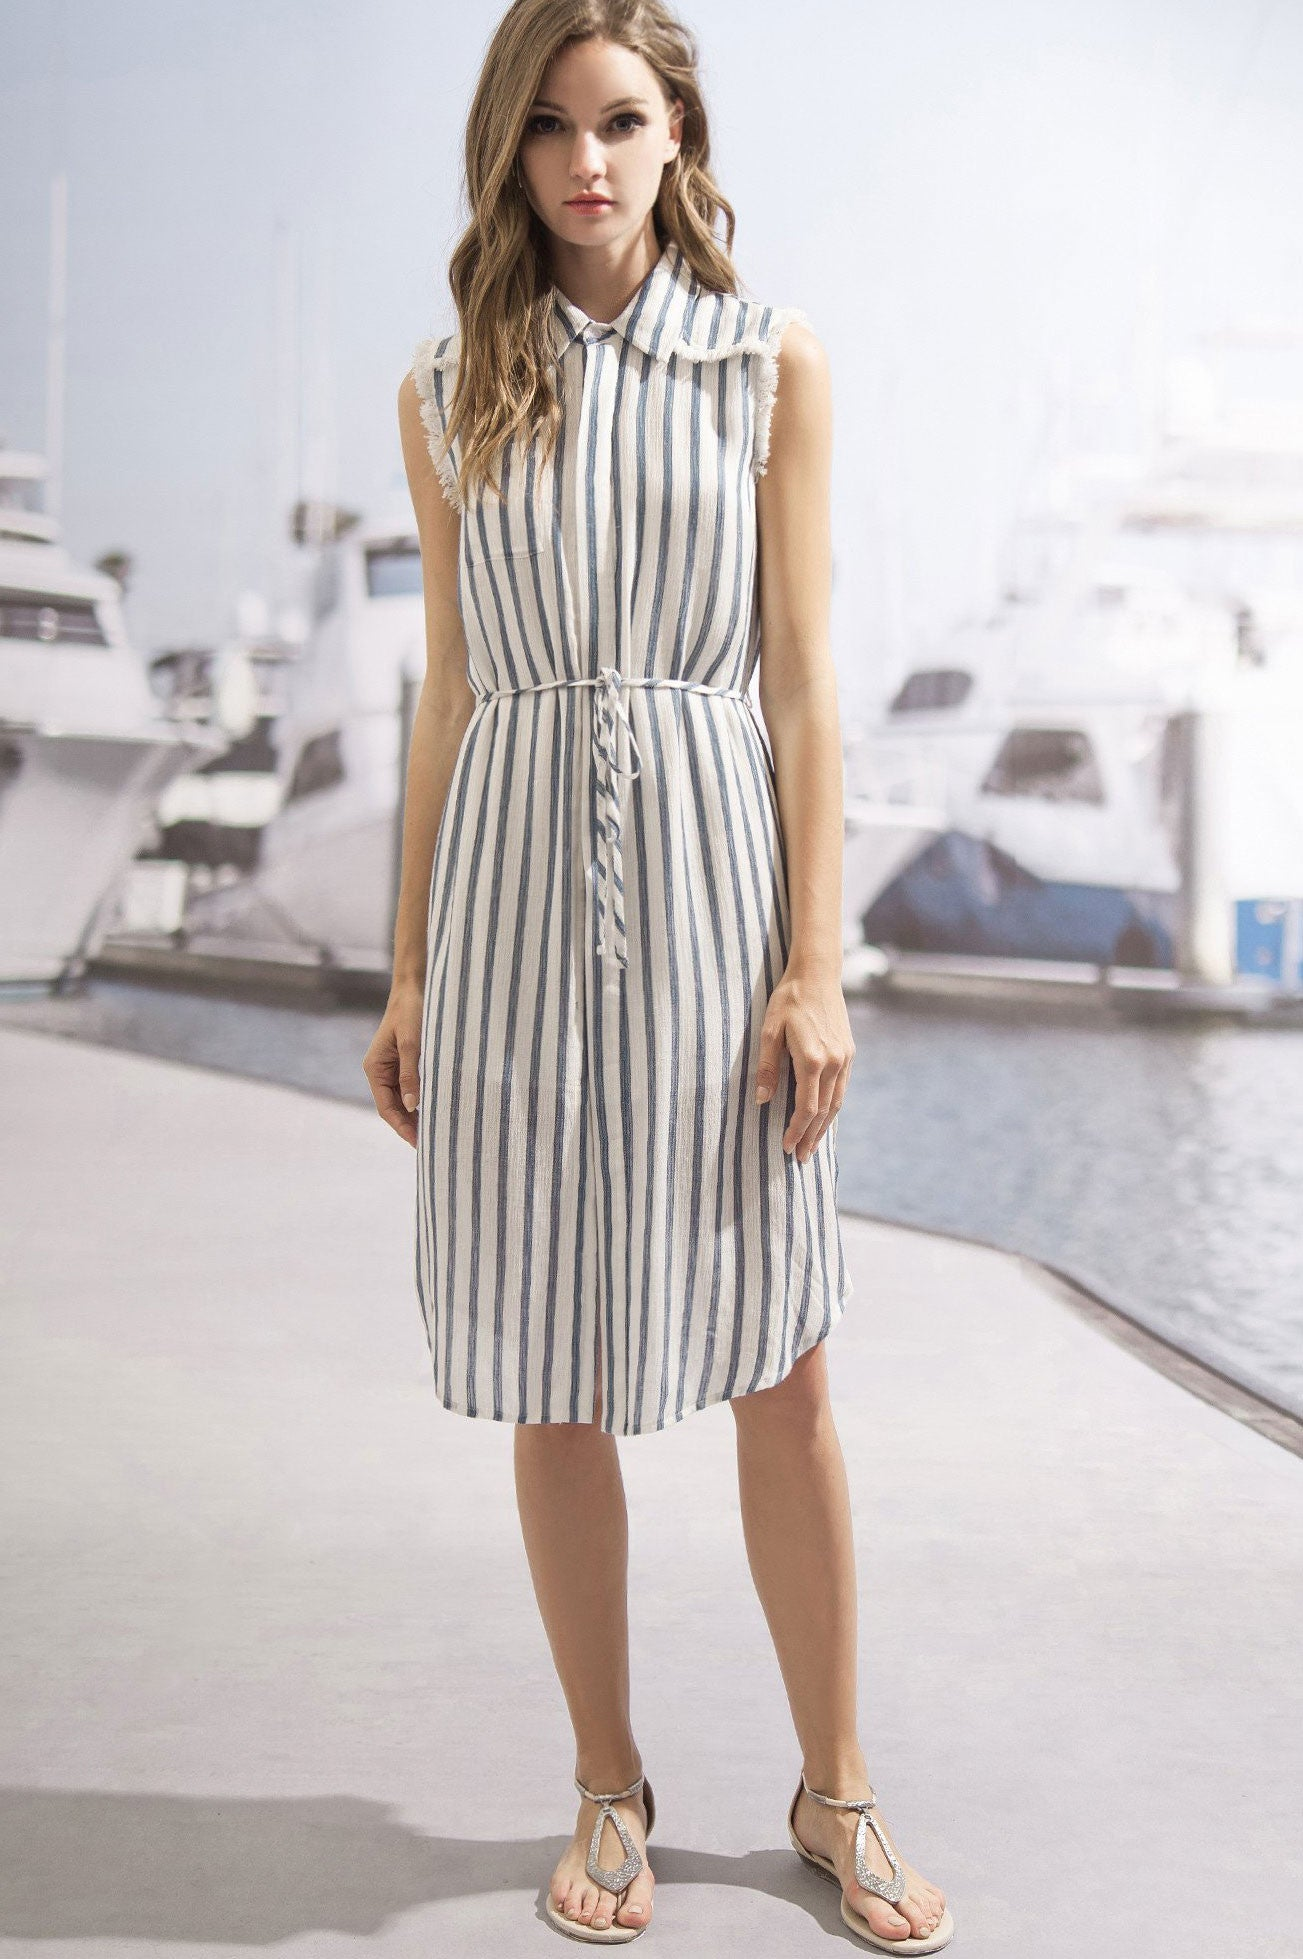 Womens Sleeveless Button Up Blue and white stripe shirt dress midi casual summer outfits